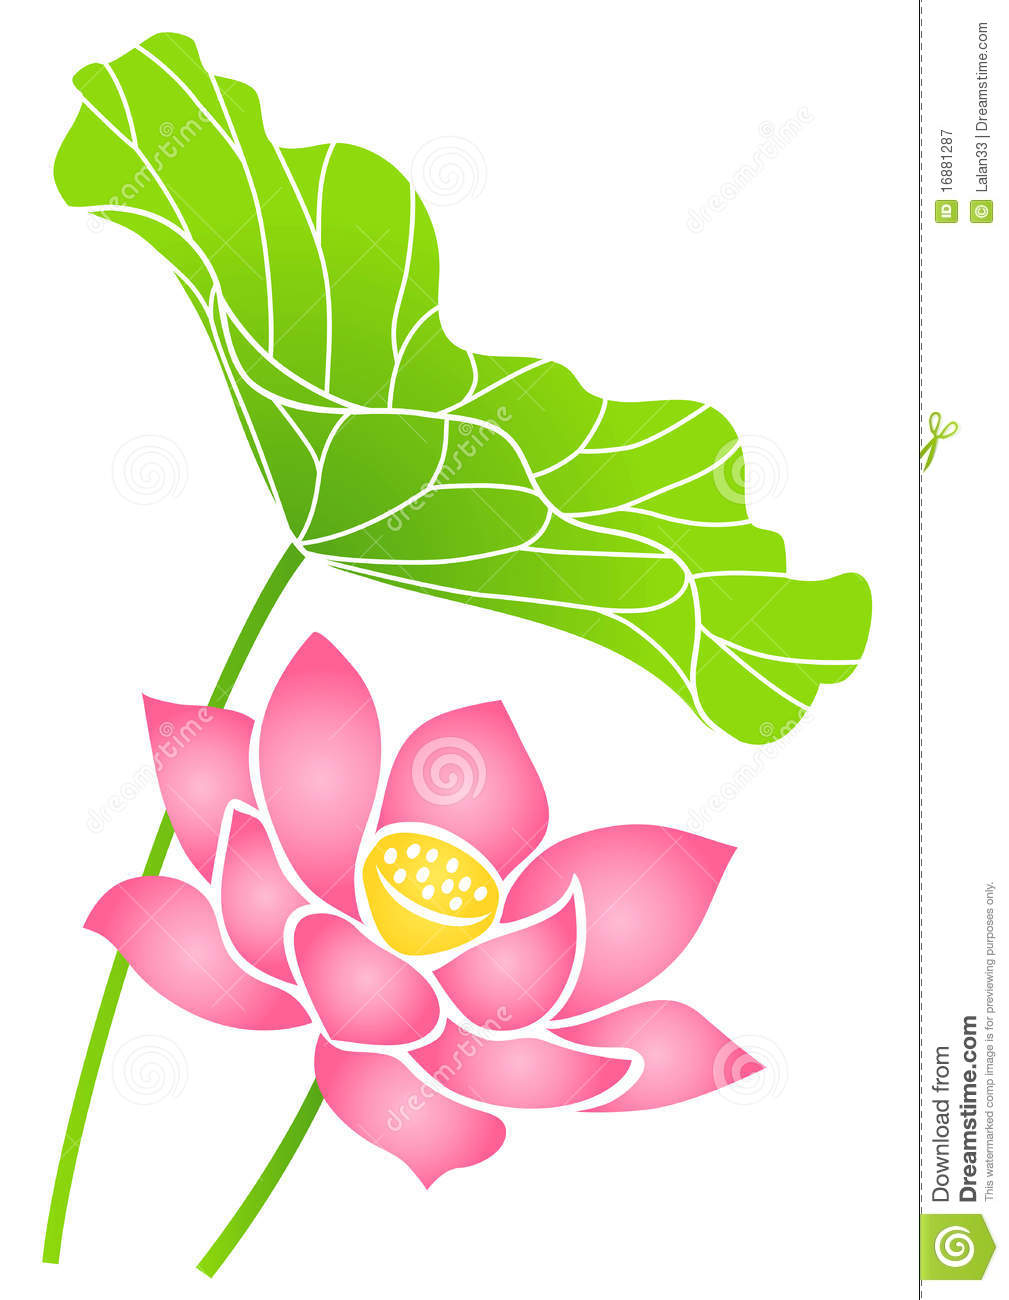 Lotus flower stock vector illustration of aquatic leaf 16881287 lotus flower mightylinksfo